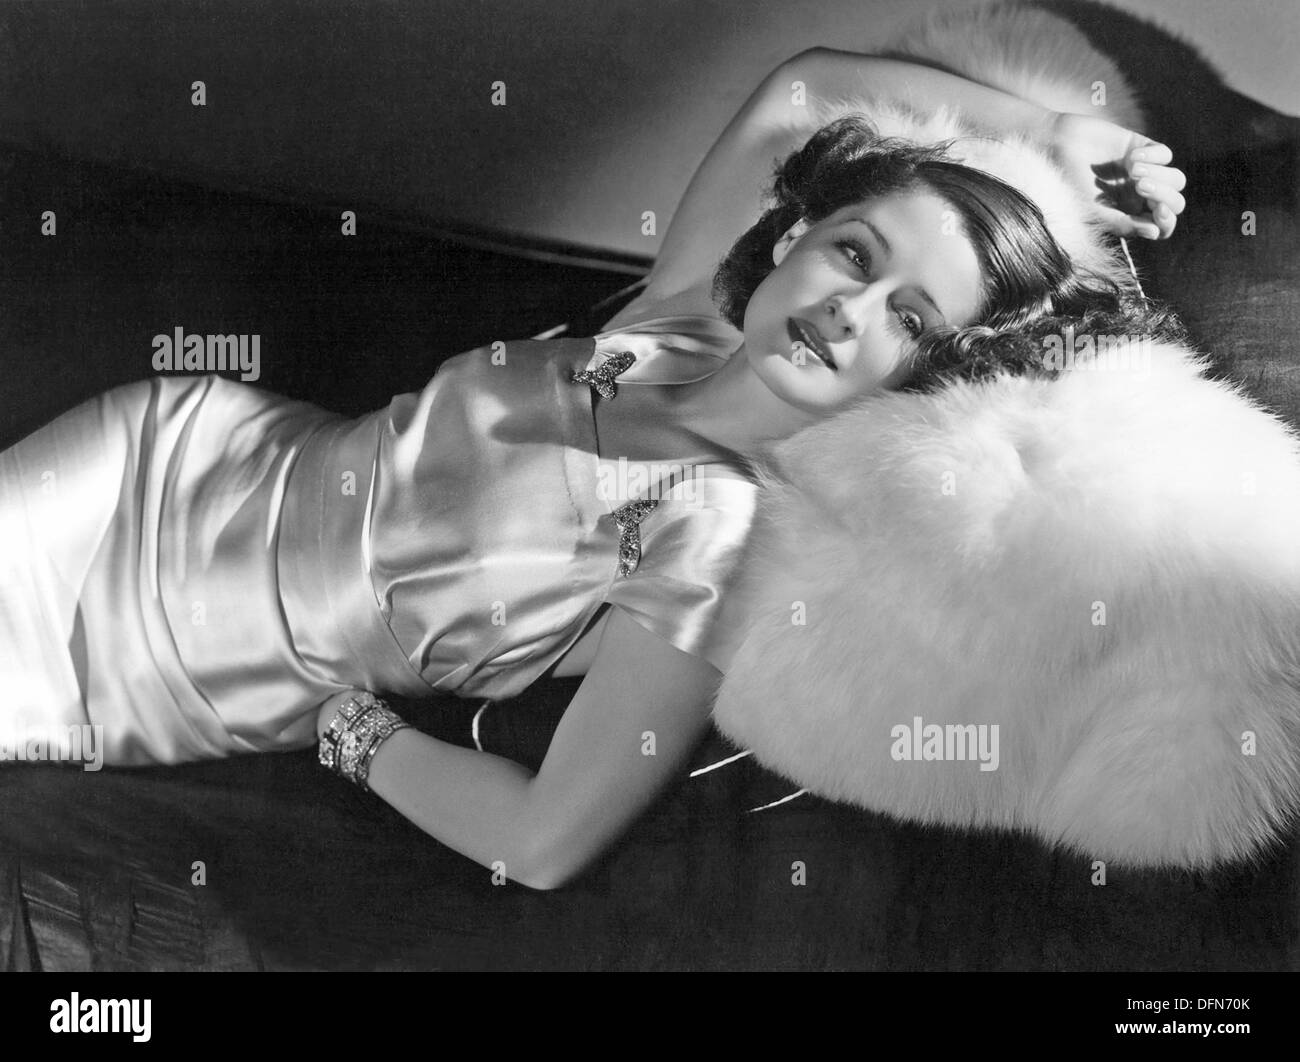 NORMA SHEARER (1902-1983) Canadian-American film actress - Stock Image